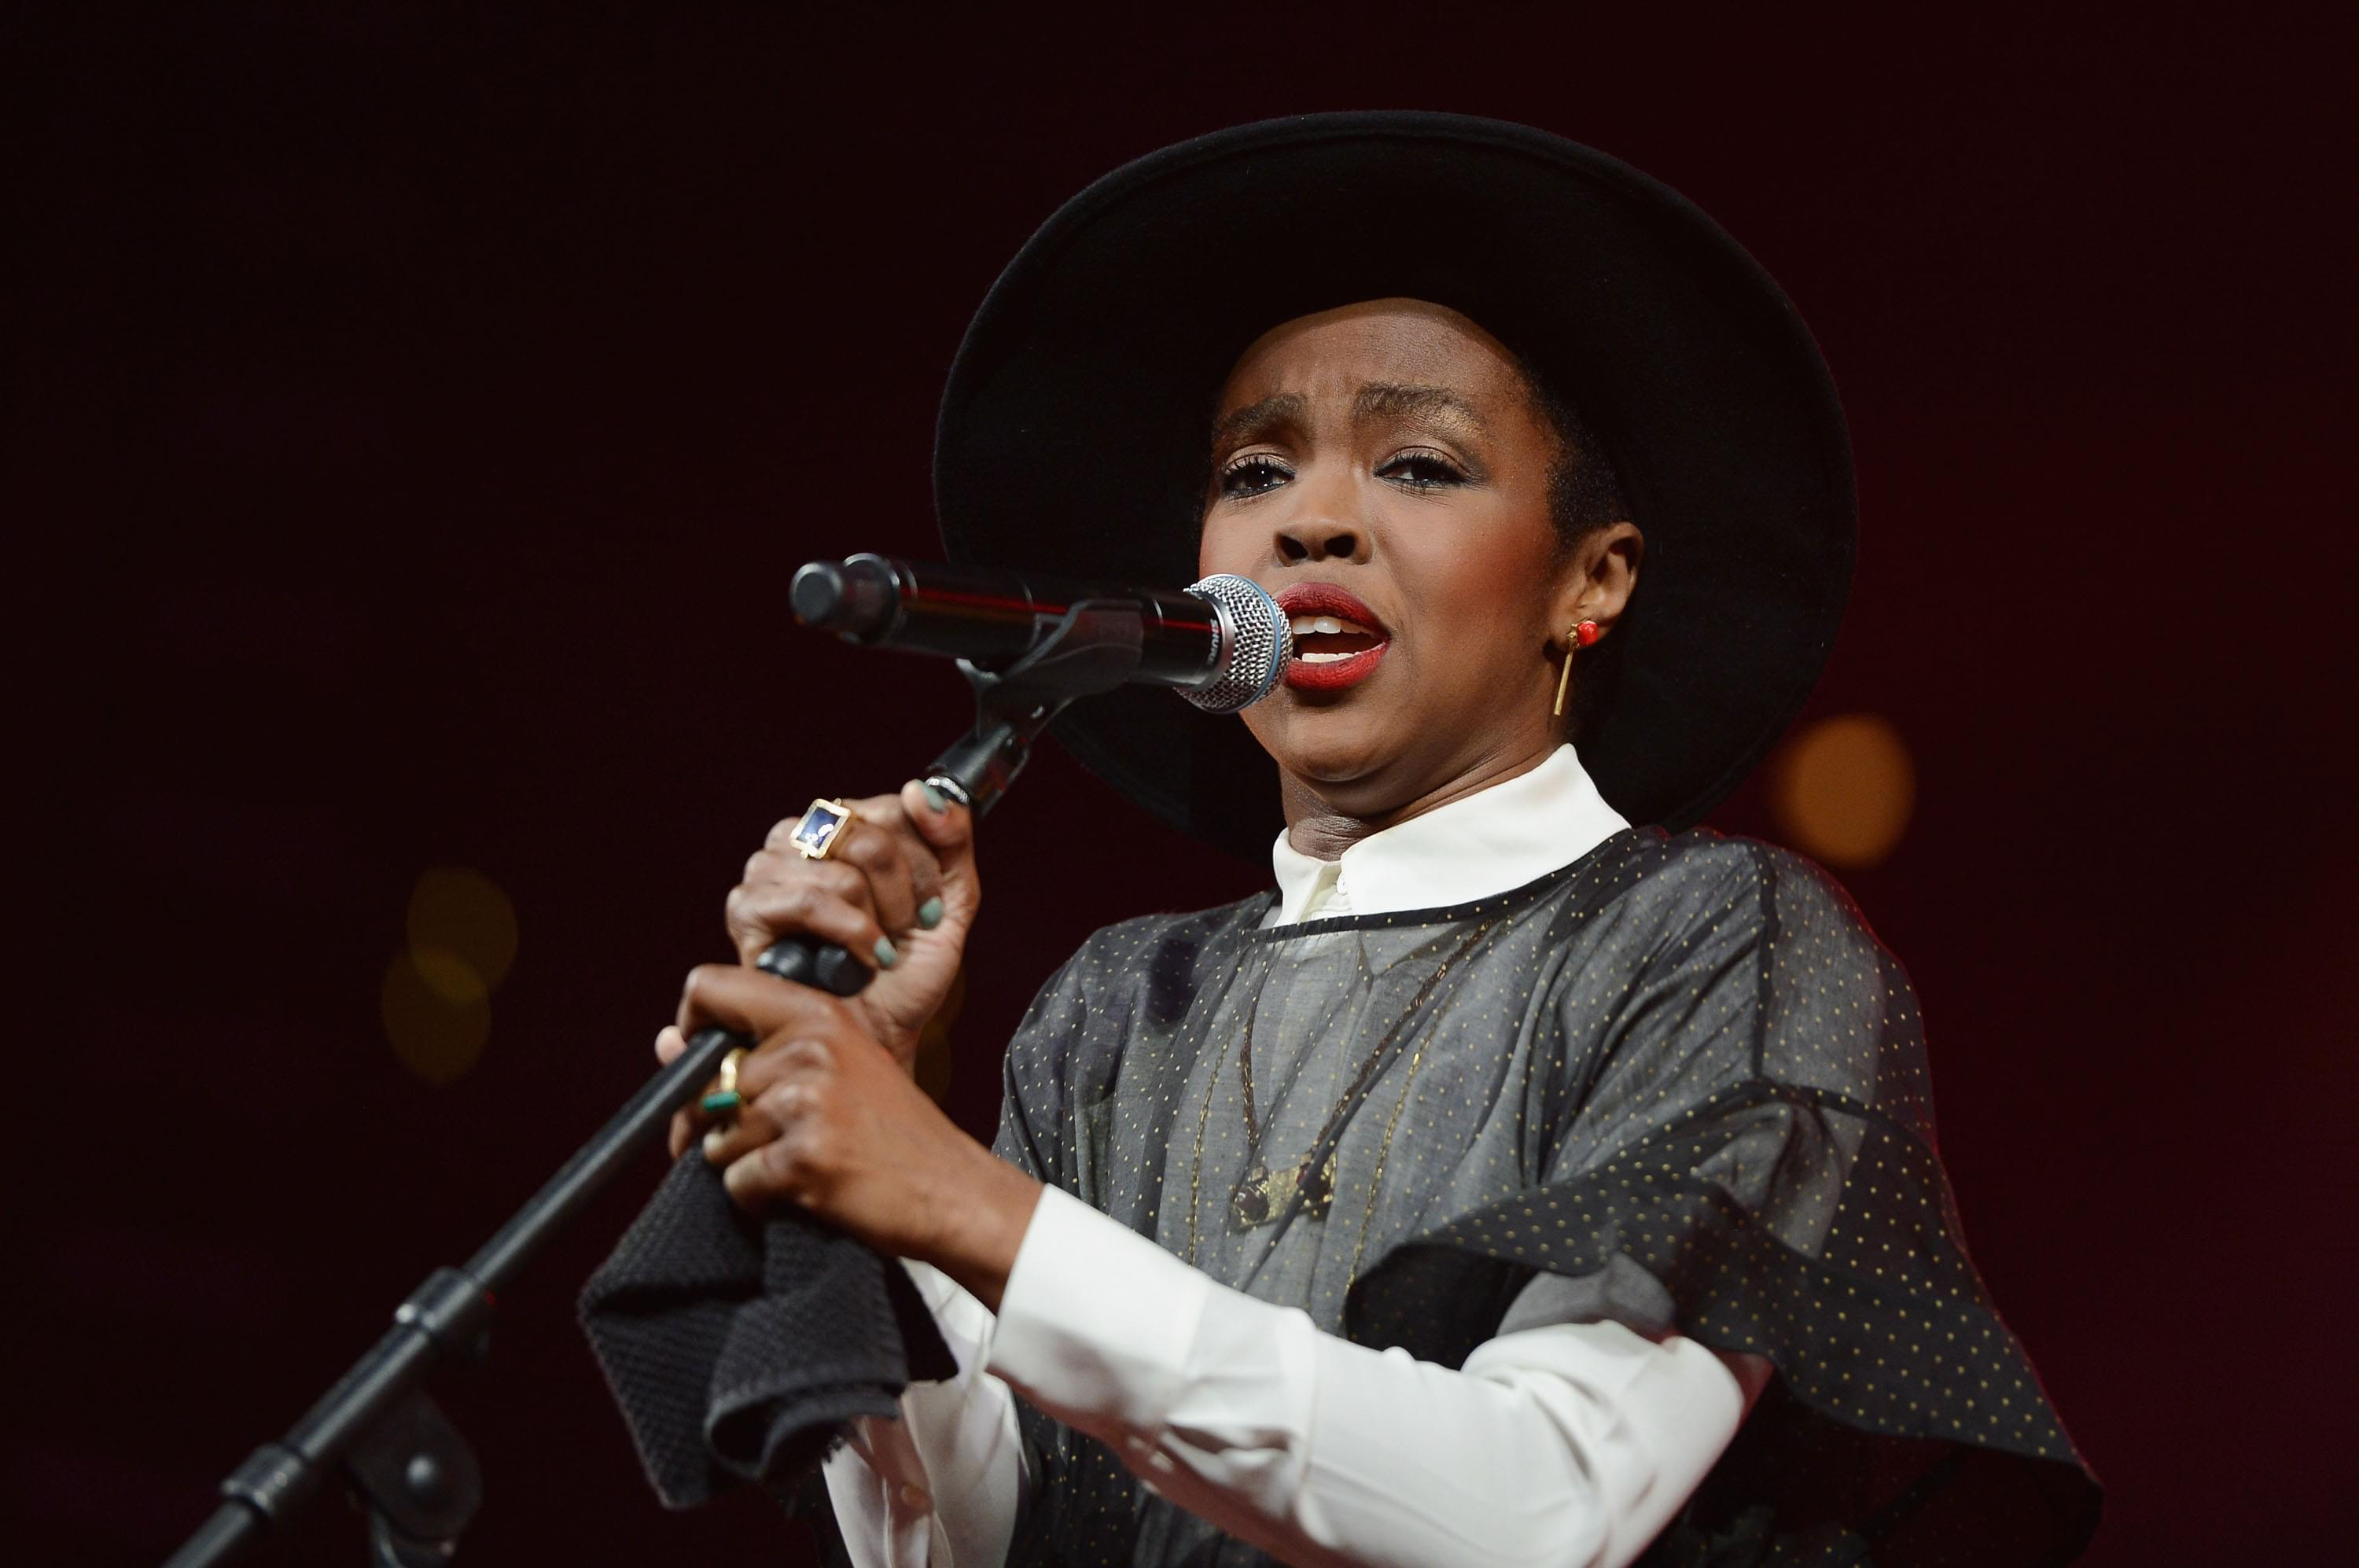 Lauryn Hill Stars in Her First Fashion Campaign To Honor Her Debut Album